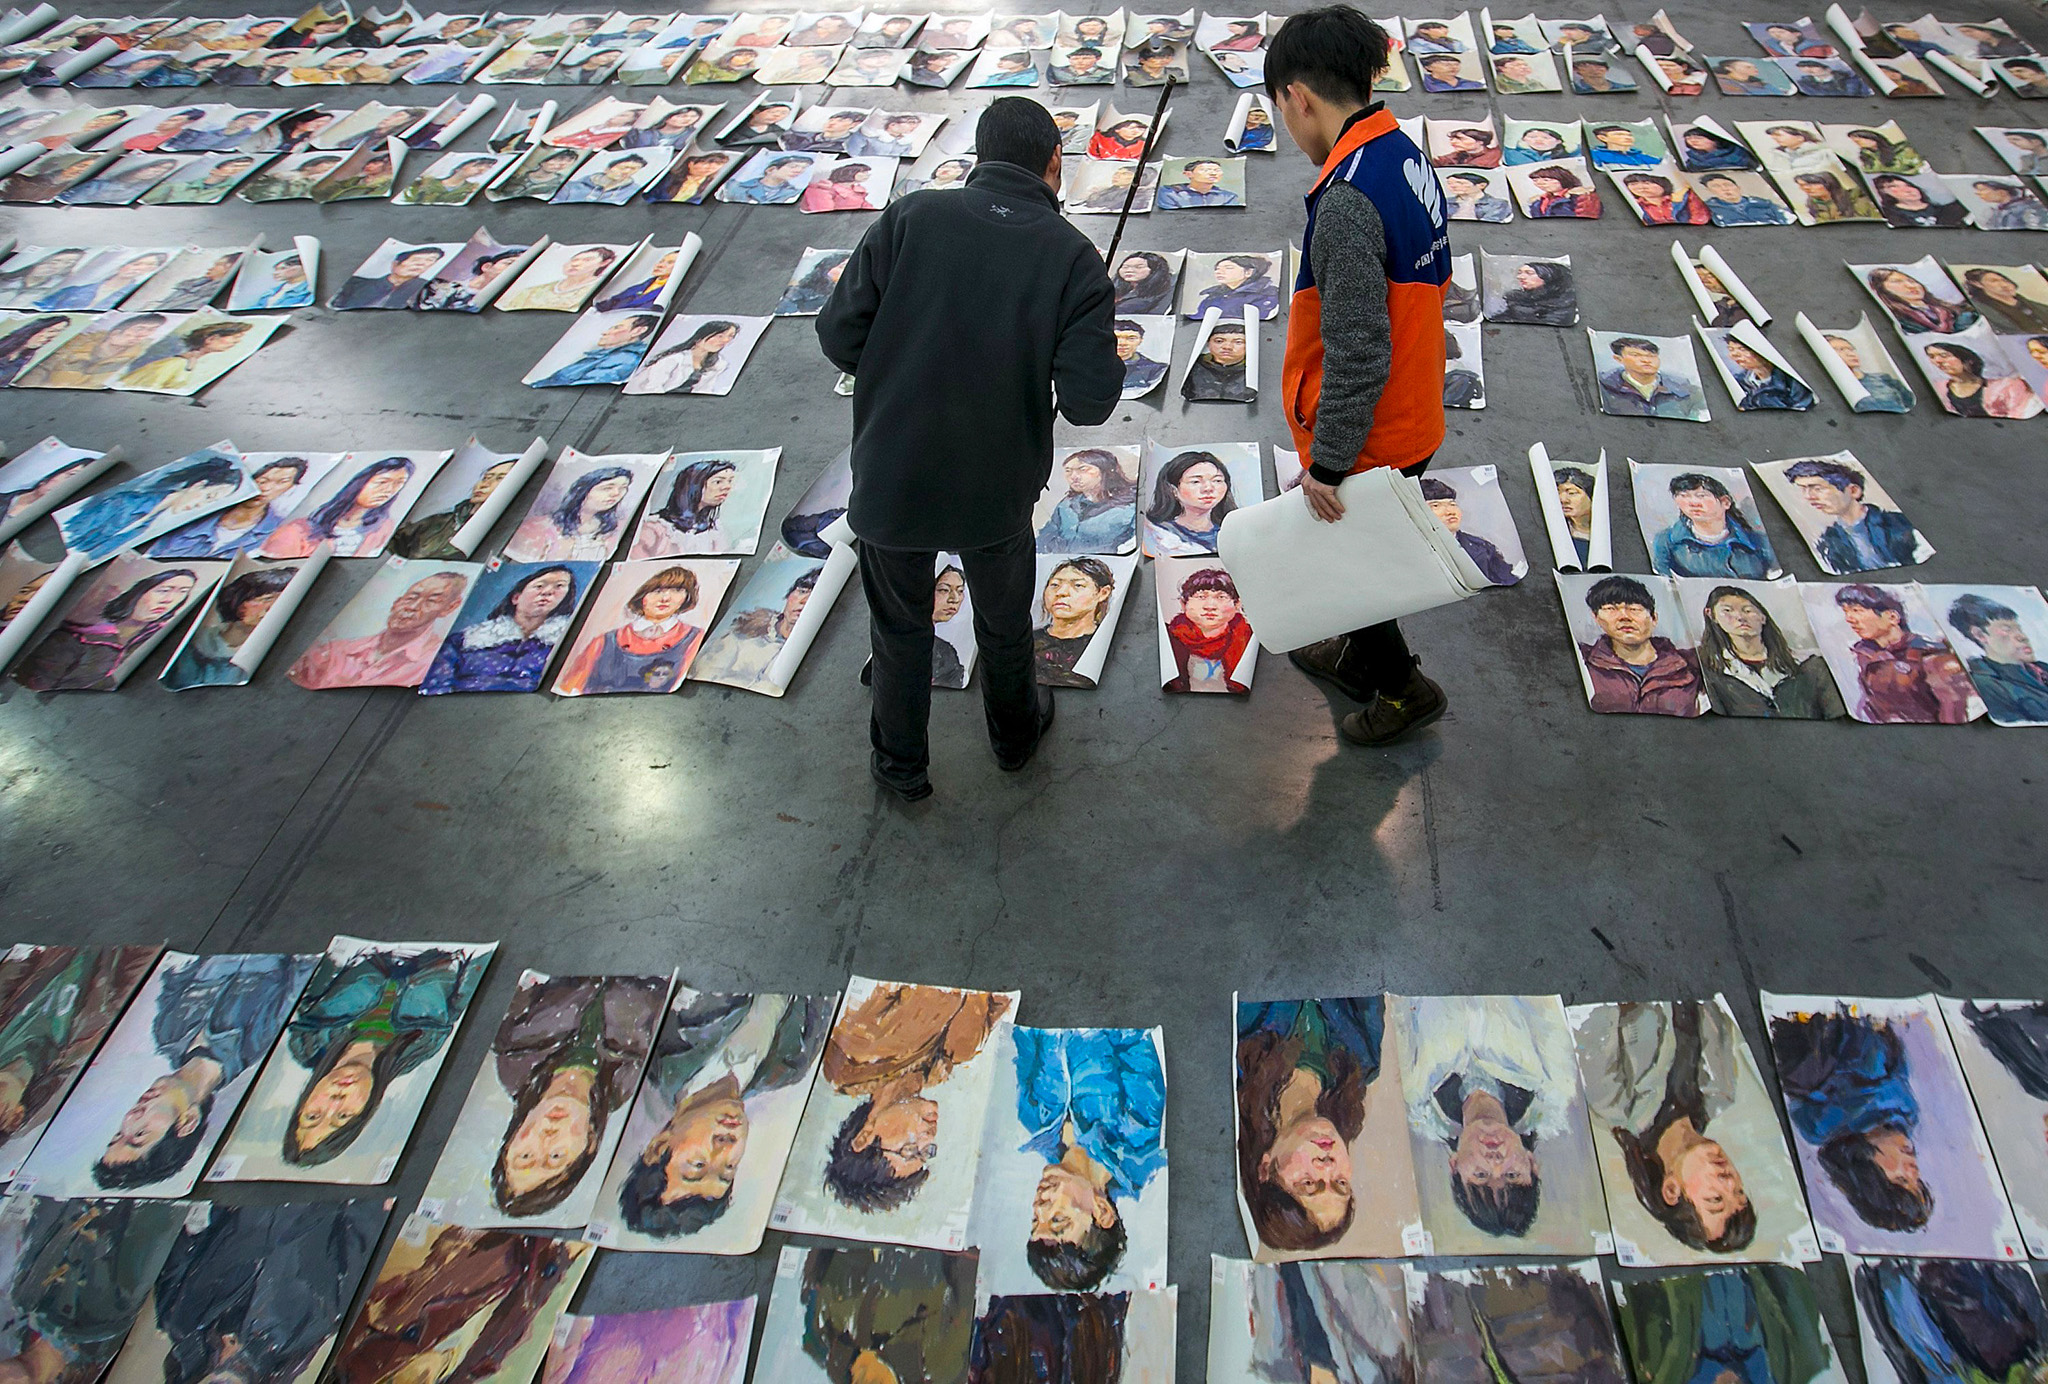 Teachers select and grade paintings done by candidates taking part in an entrance examination at China Academy of Art in Hangzhou...Teachers select and grade paintings done by candidates taking part in an entrance examination at China Academy of Art in Hangzhou, Zhejiang province, March 25, 2015. REUTERS/Chance Chan